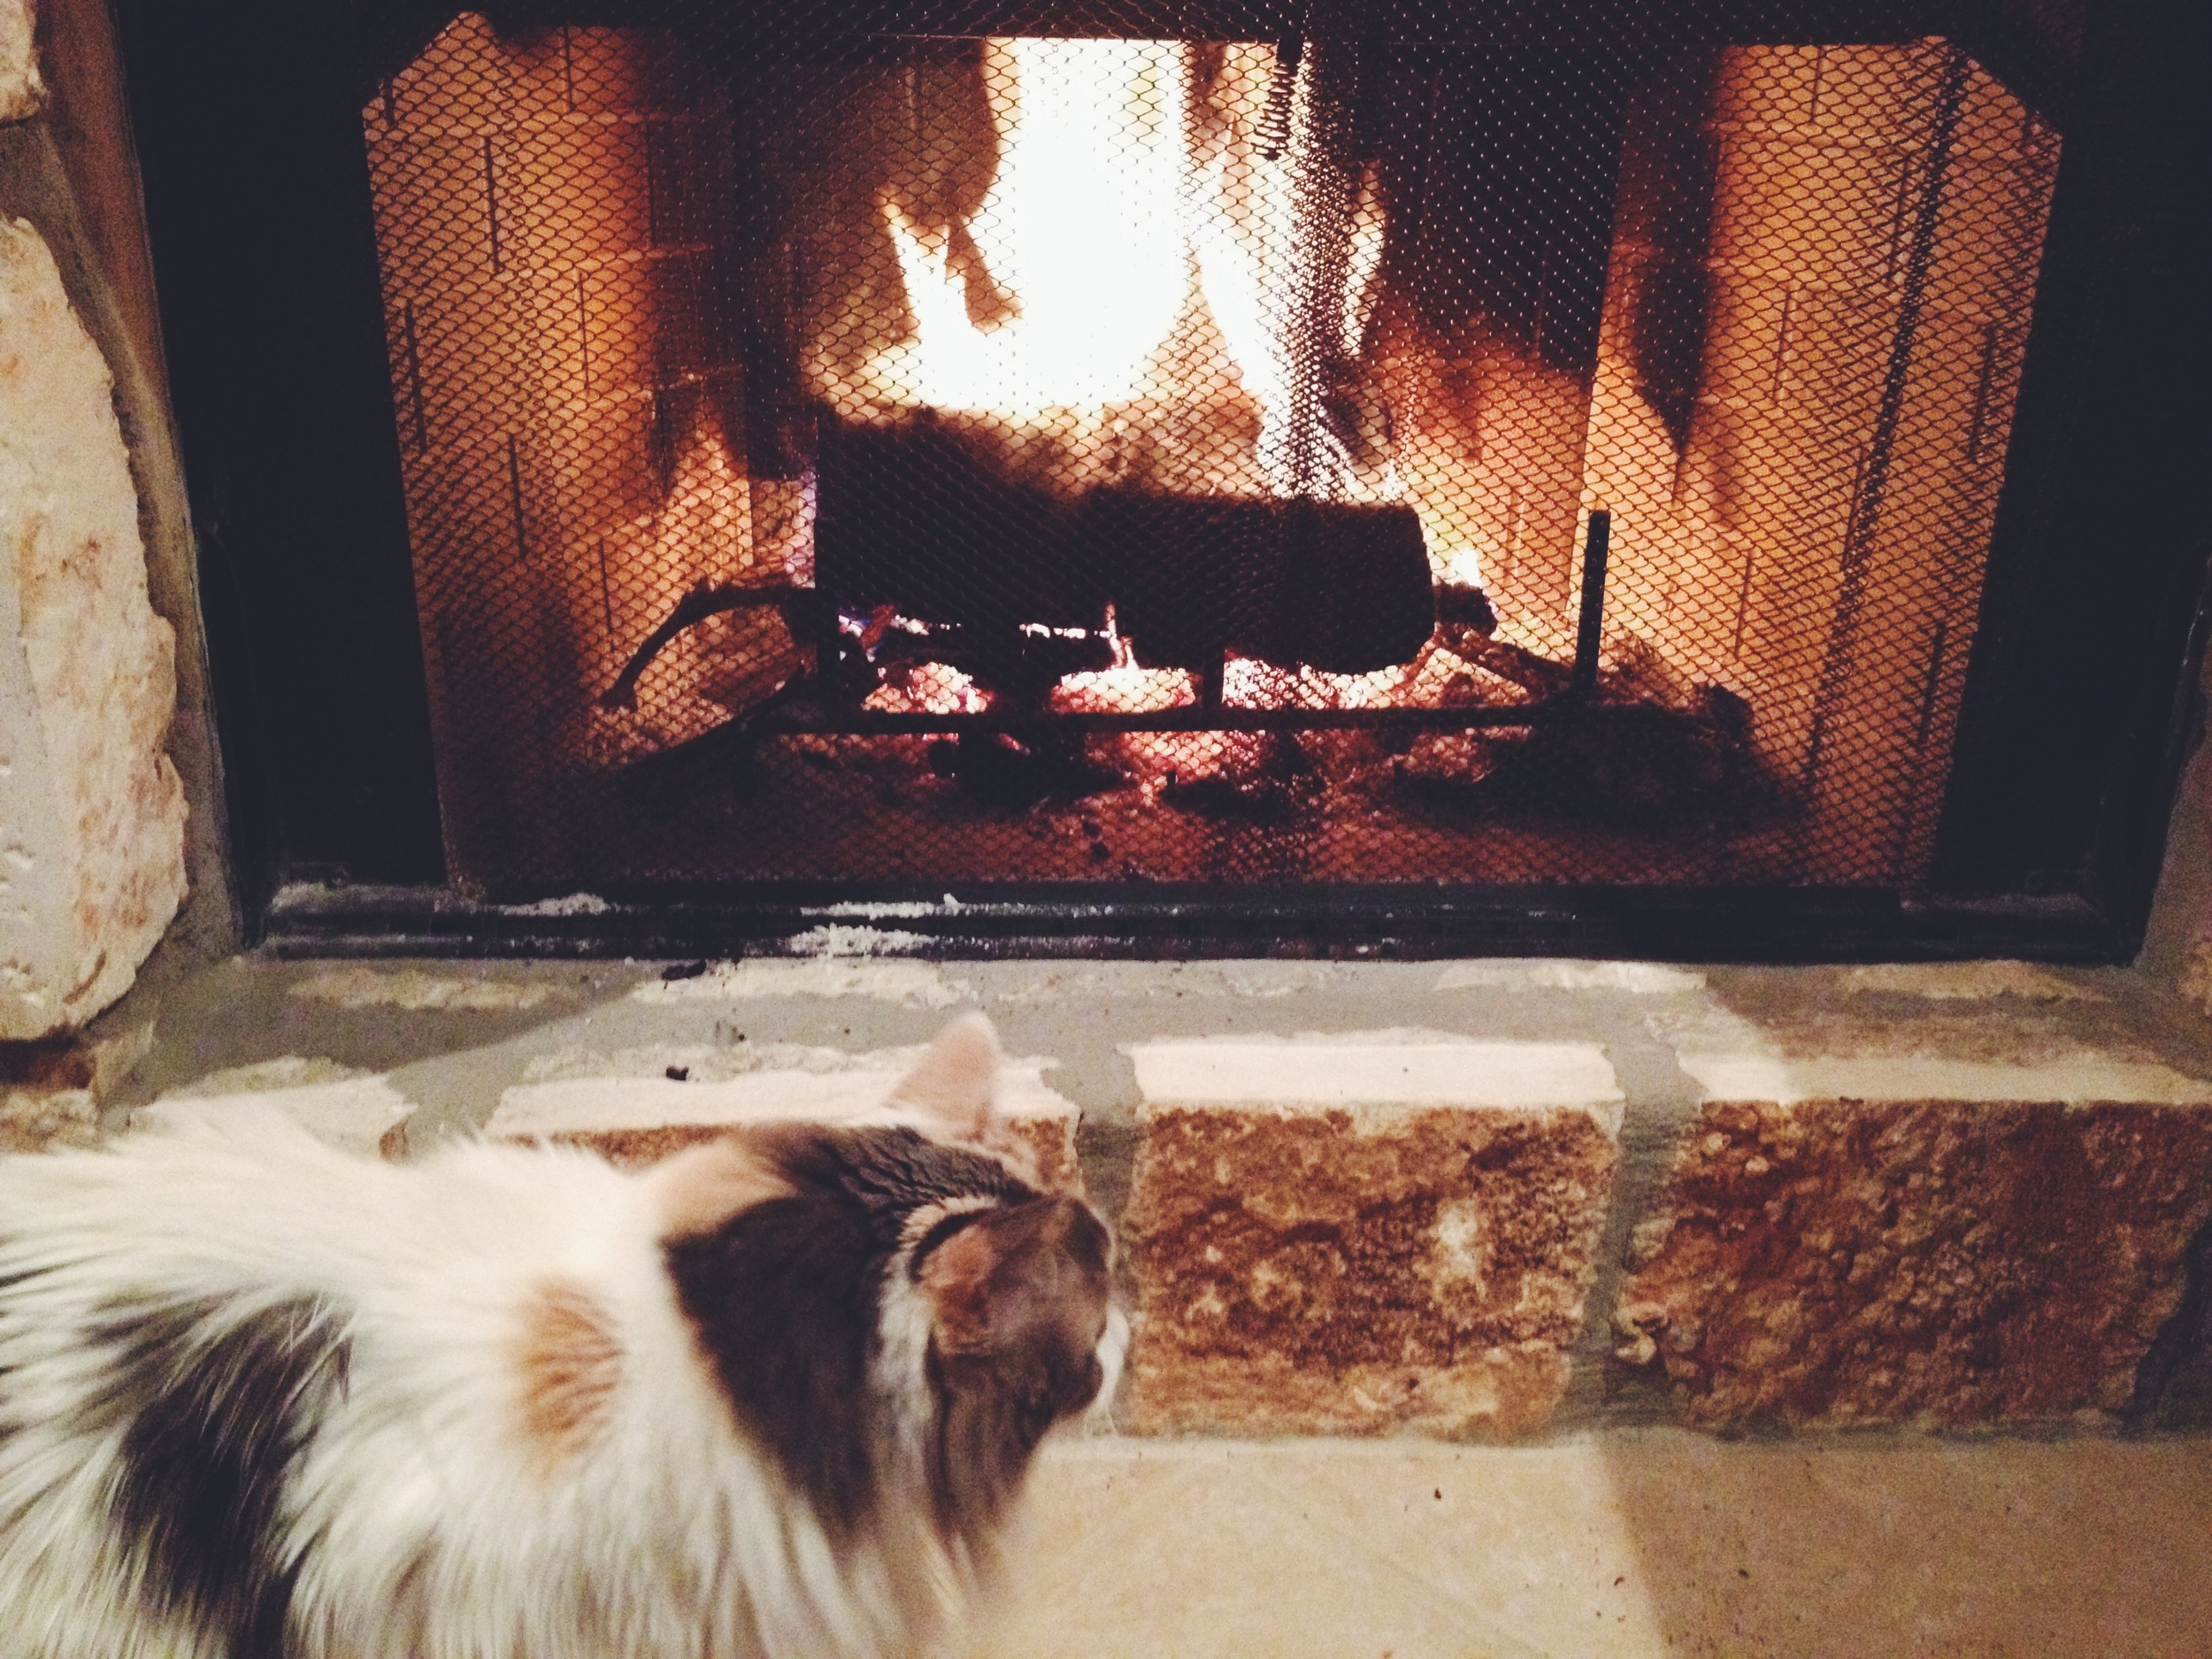 It got cold enough to have a few more fires in the fireplace...